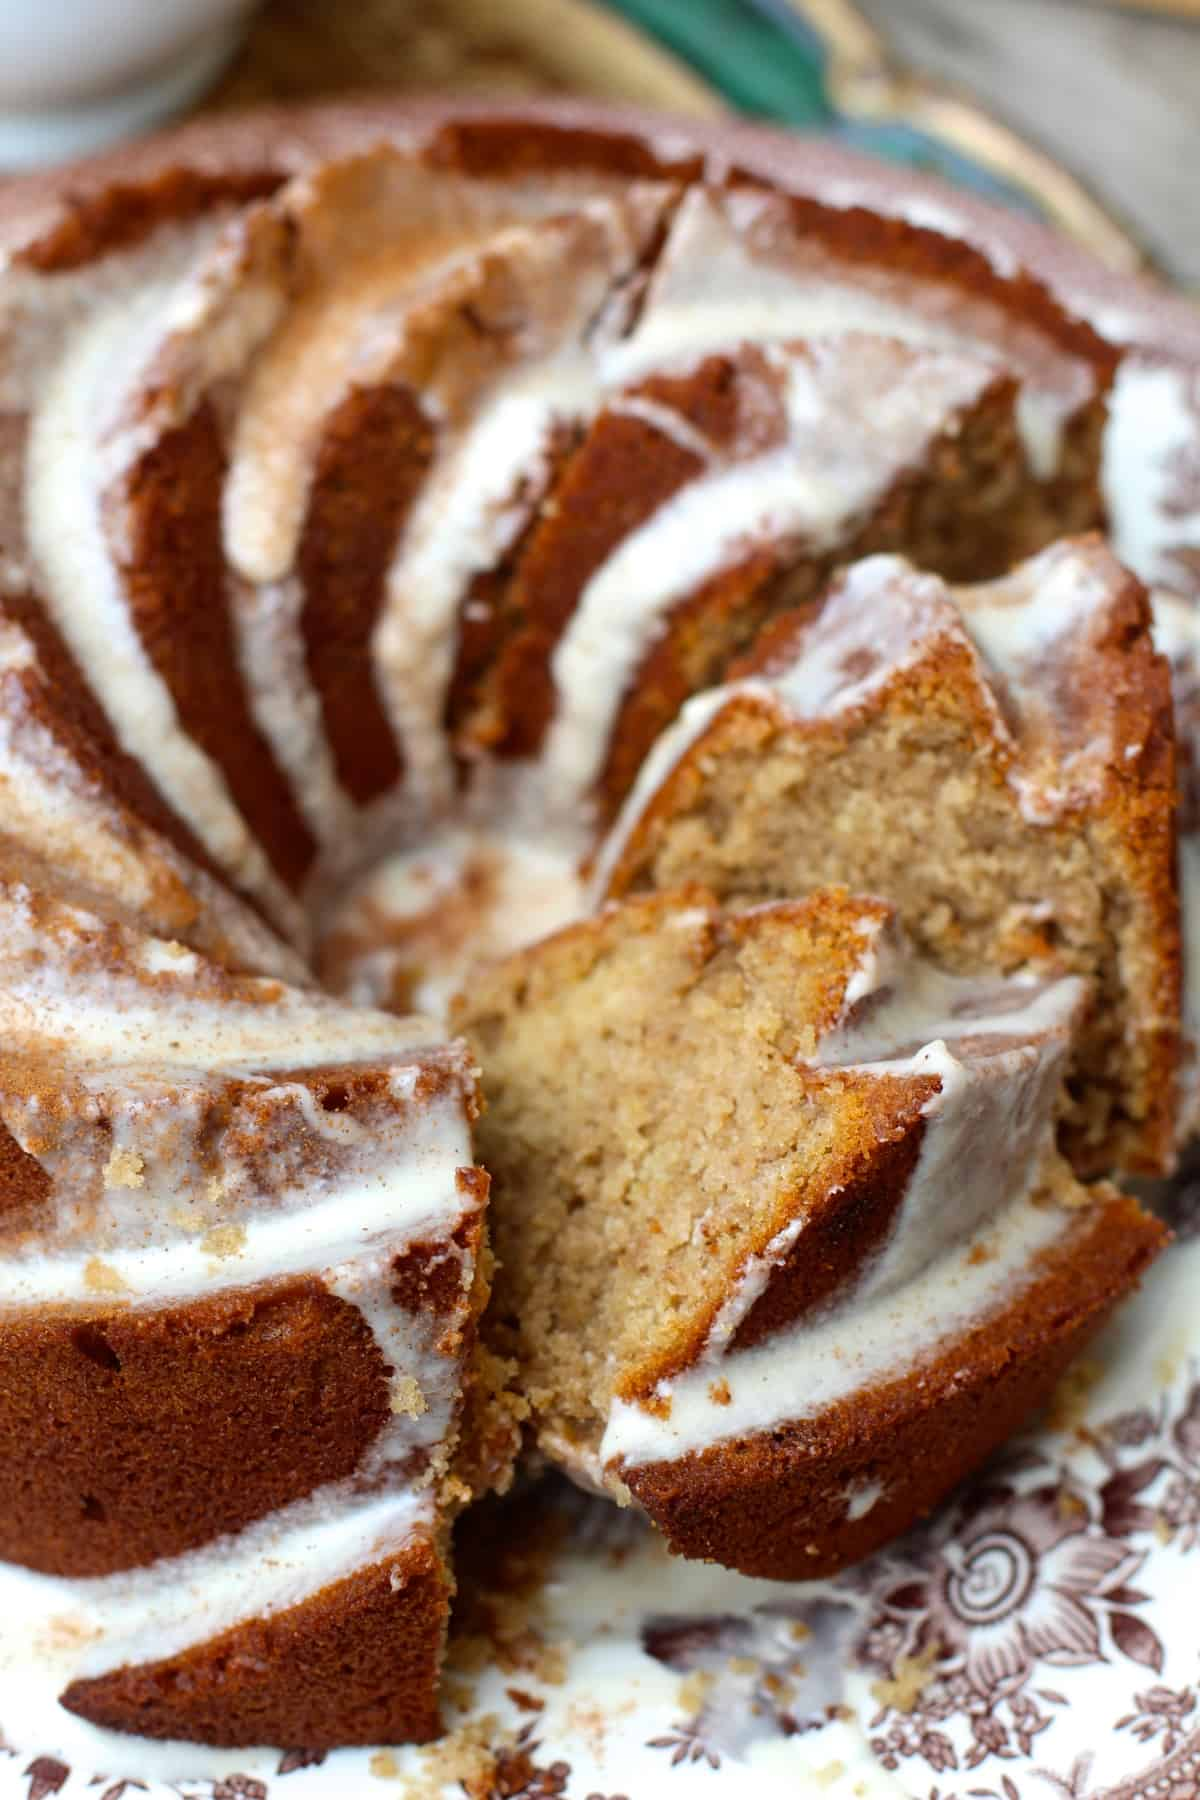 Slice of warm and cozy Vanilla Chai Bundt Cake